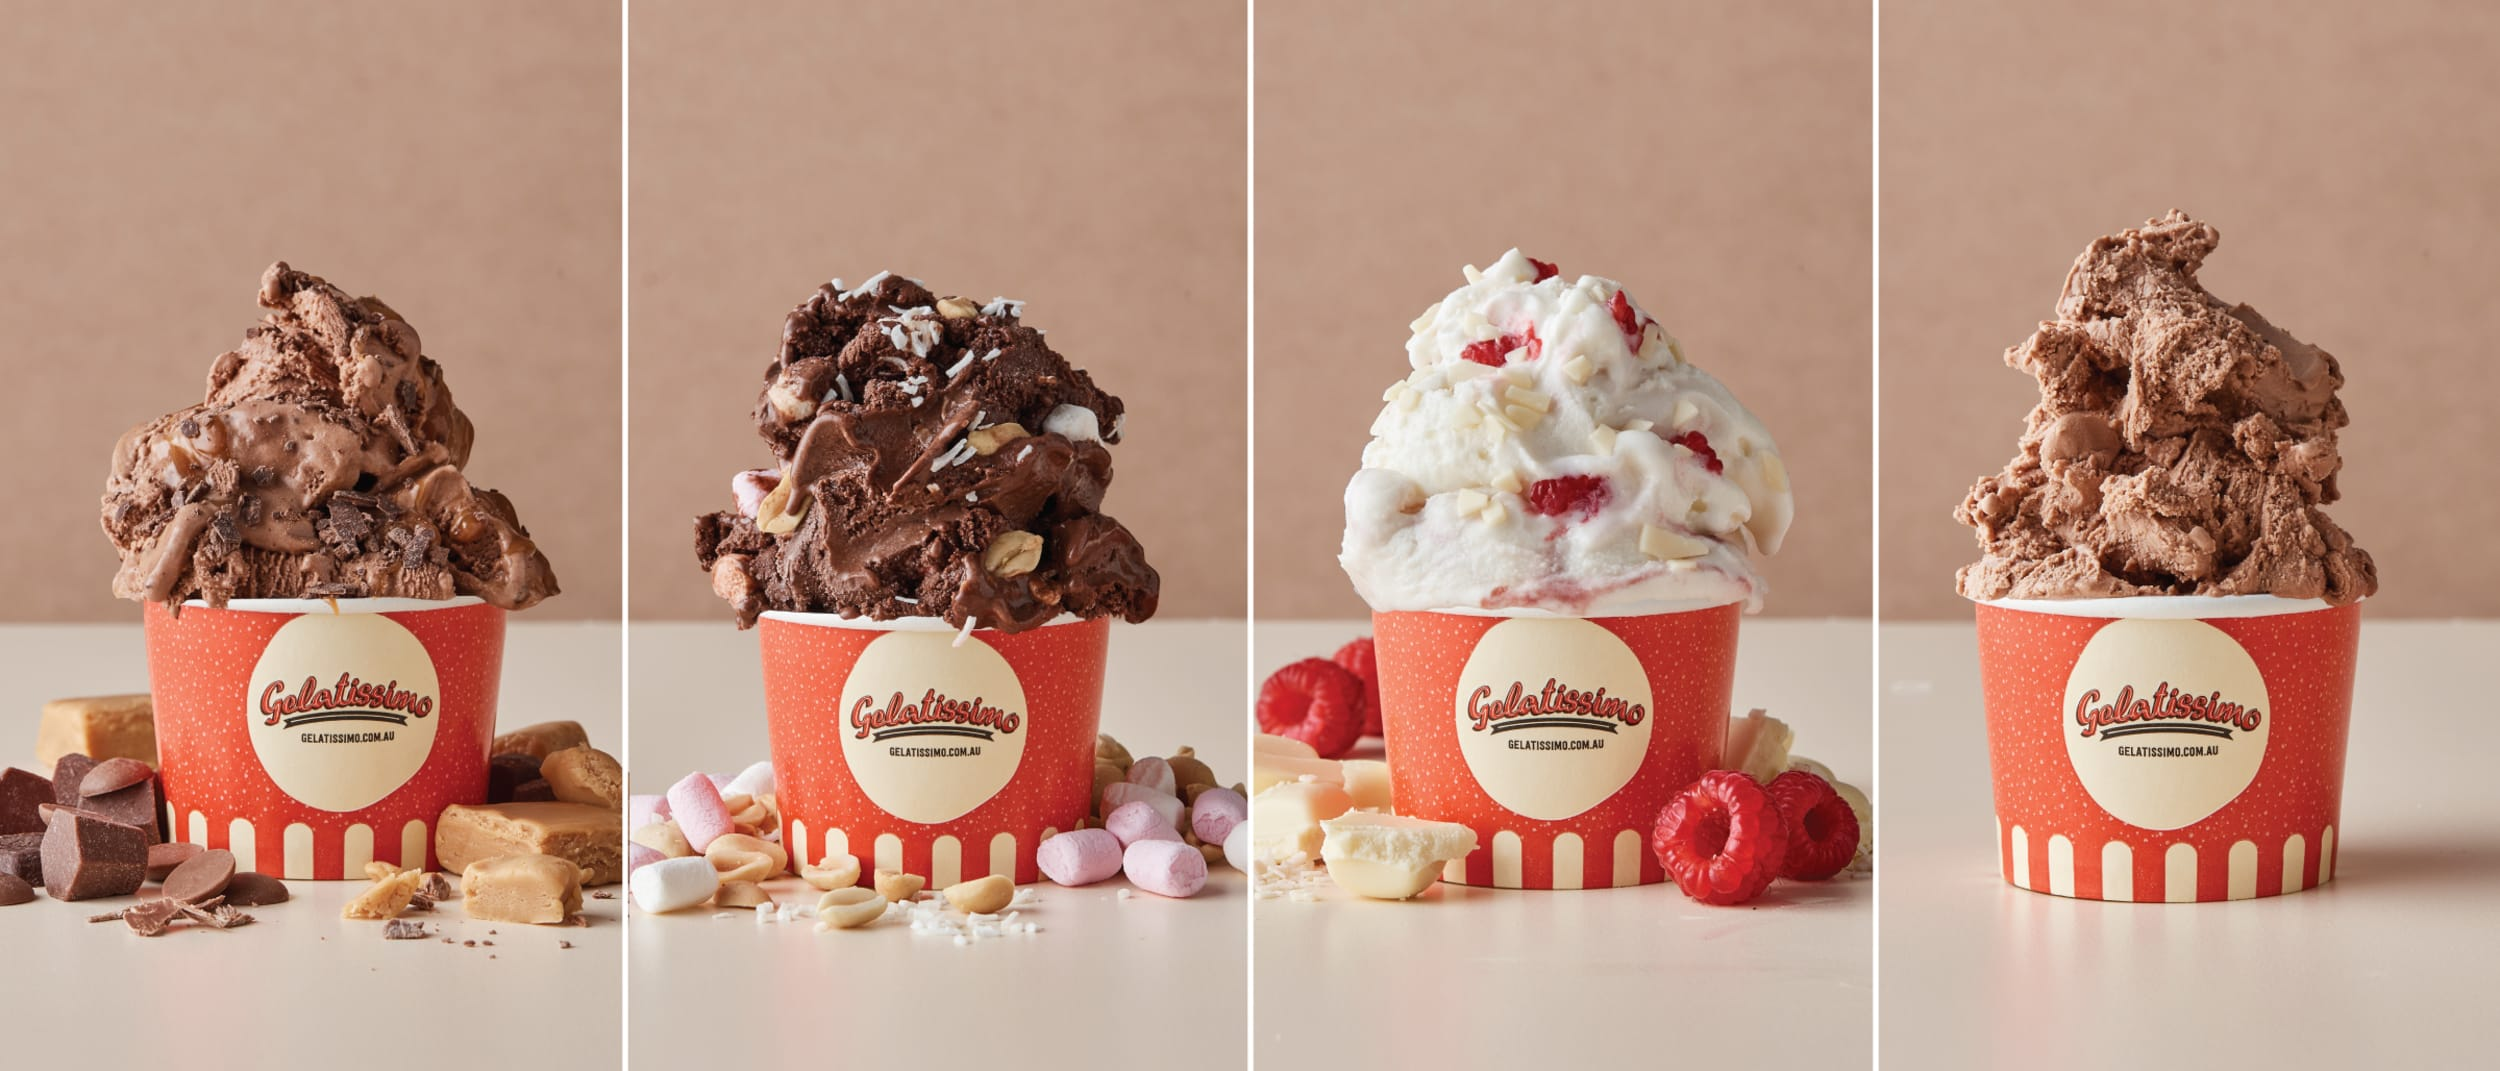 Four new gelato flavours perfect for chocoholics at Gelatissimo